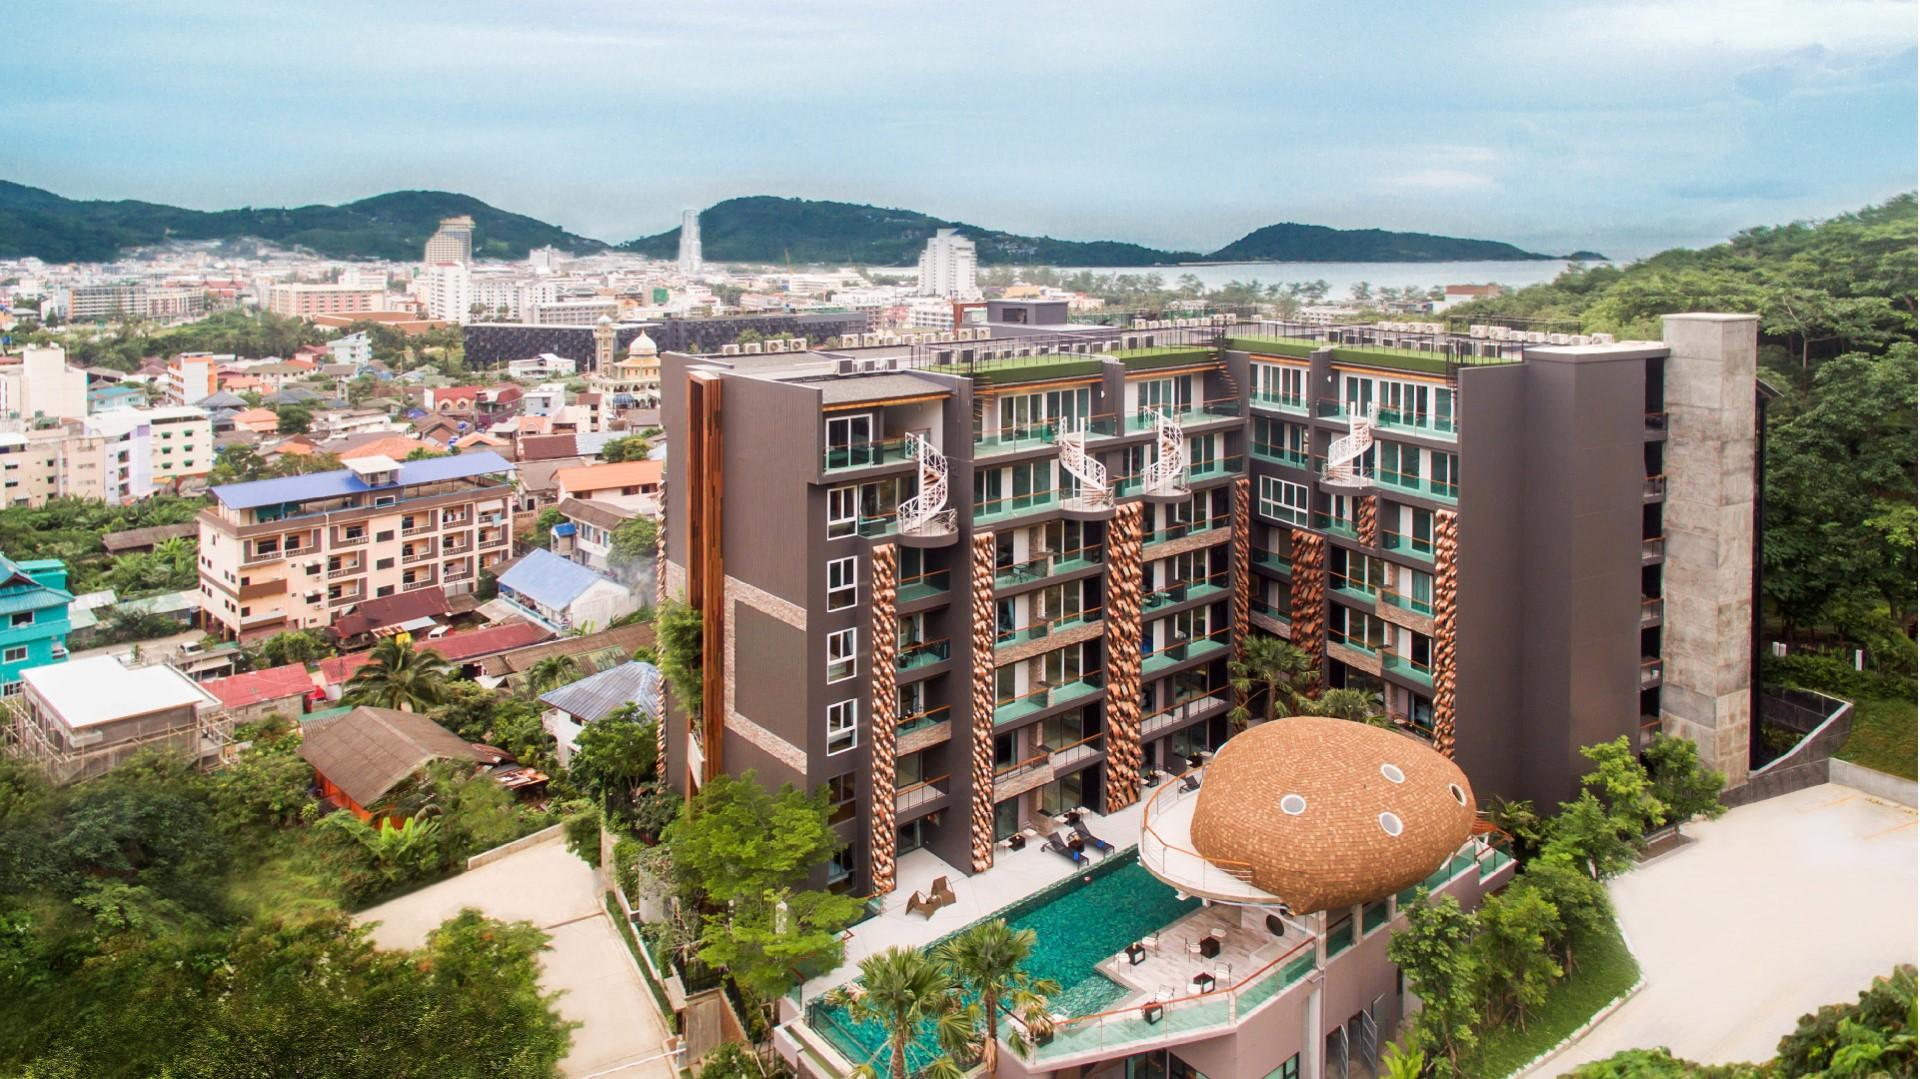 Emerald Terrace Patong by CHATTHA Emerald Terrace Patong by CHATTHA